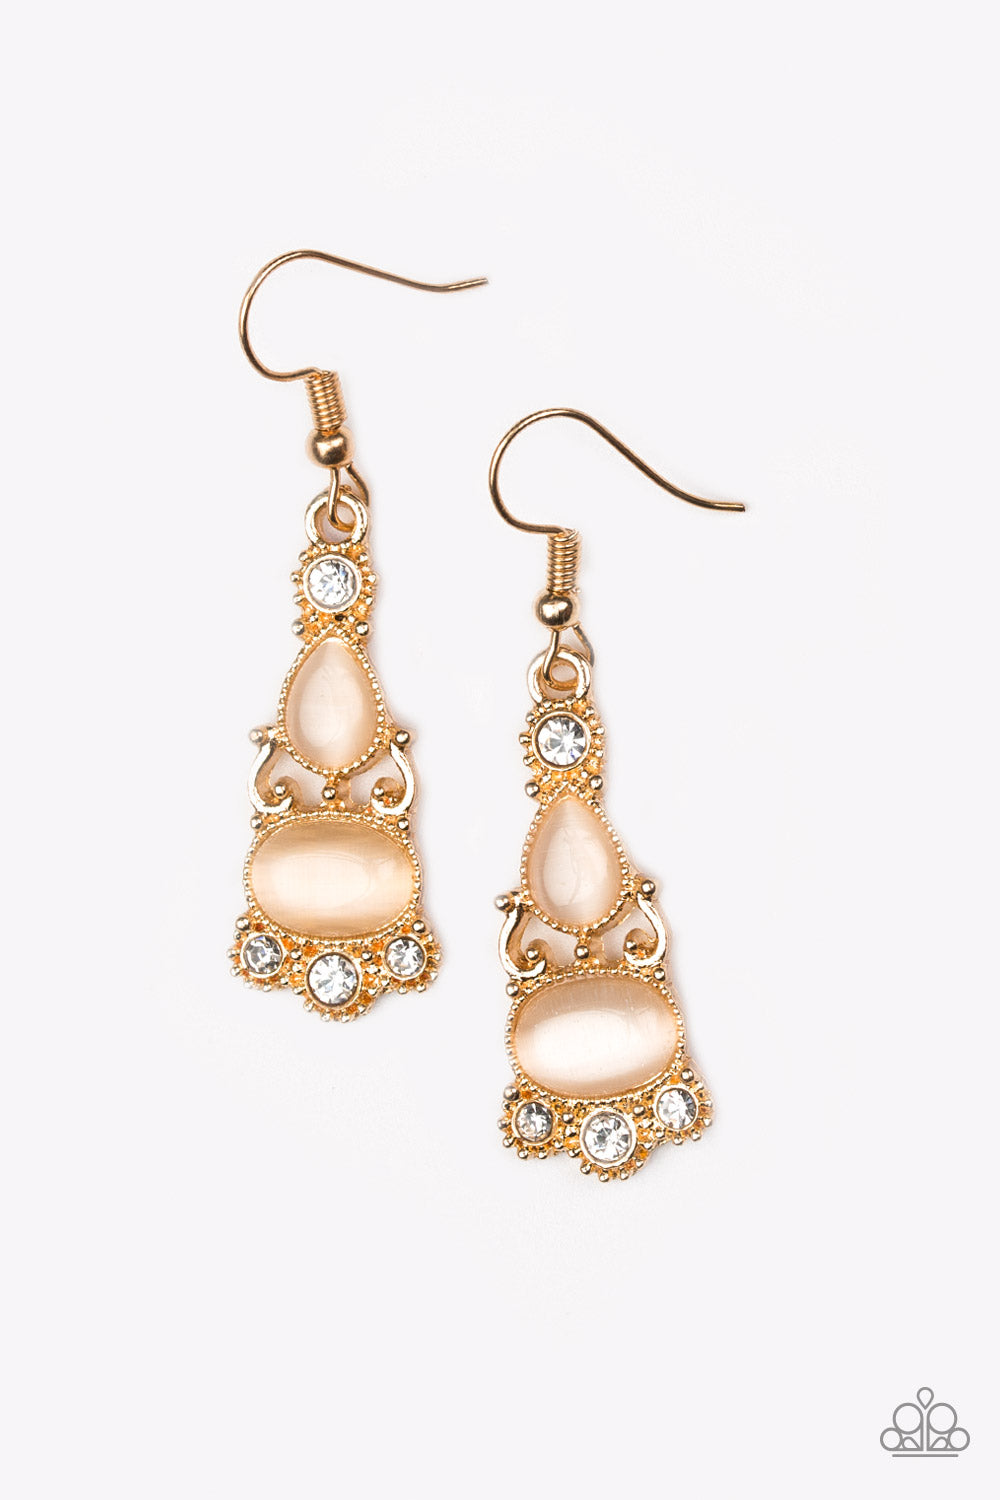 Paparazzi Accessories - Push Your LUXE - Gold Earrings - JMJ Jewelry Collection